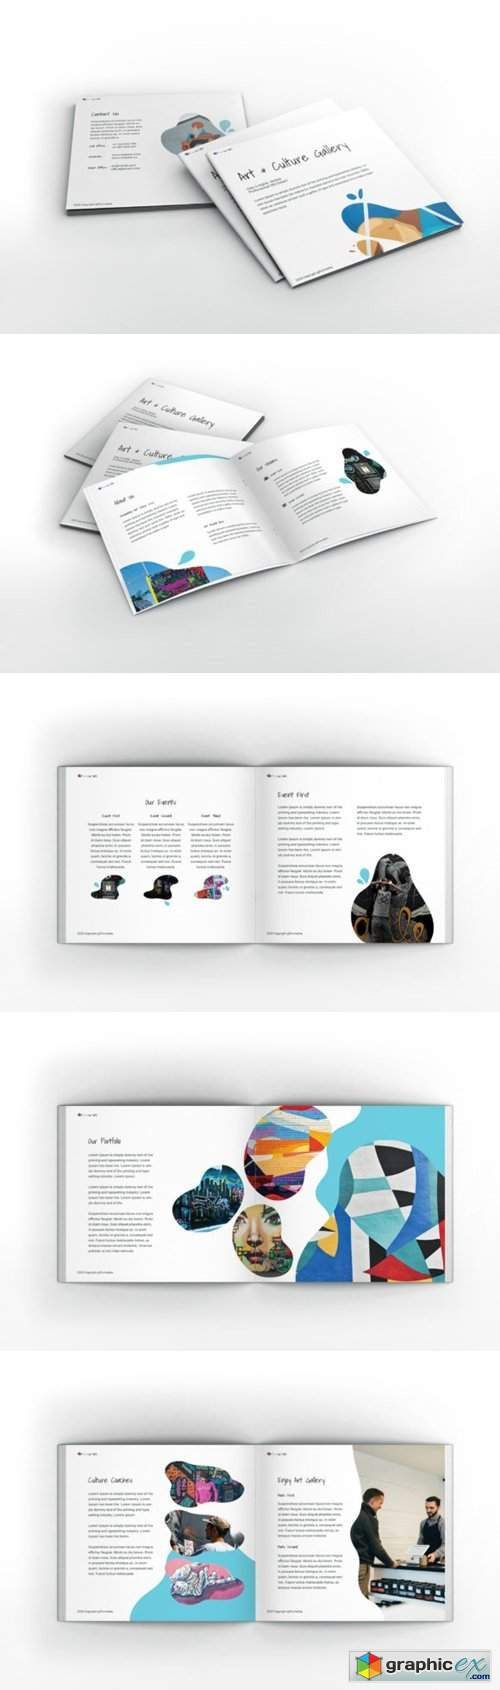 Art Gallery Square Brochure Template